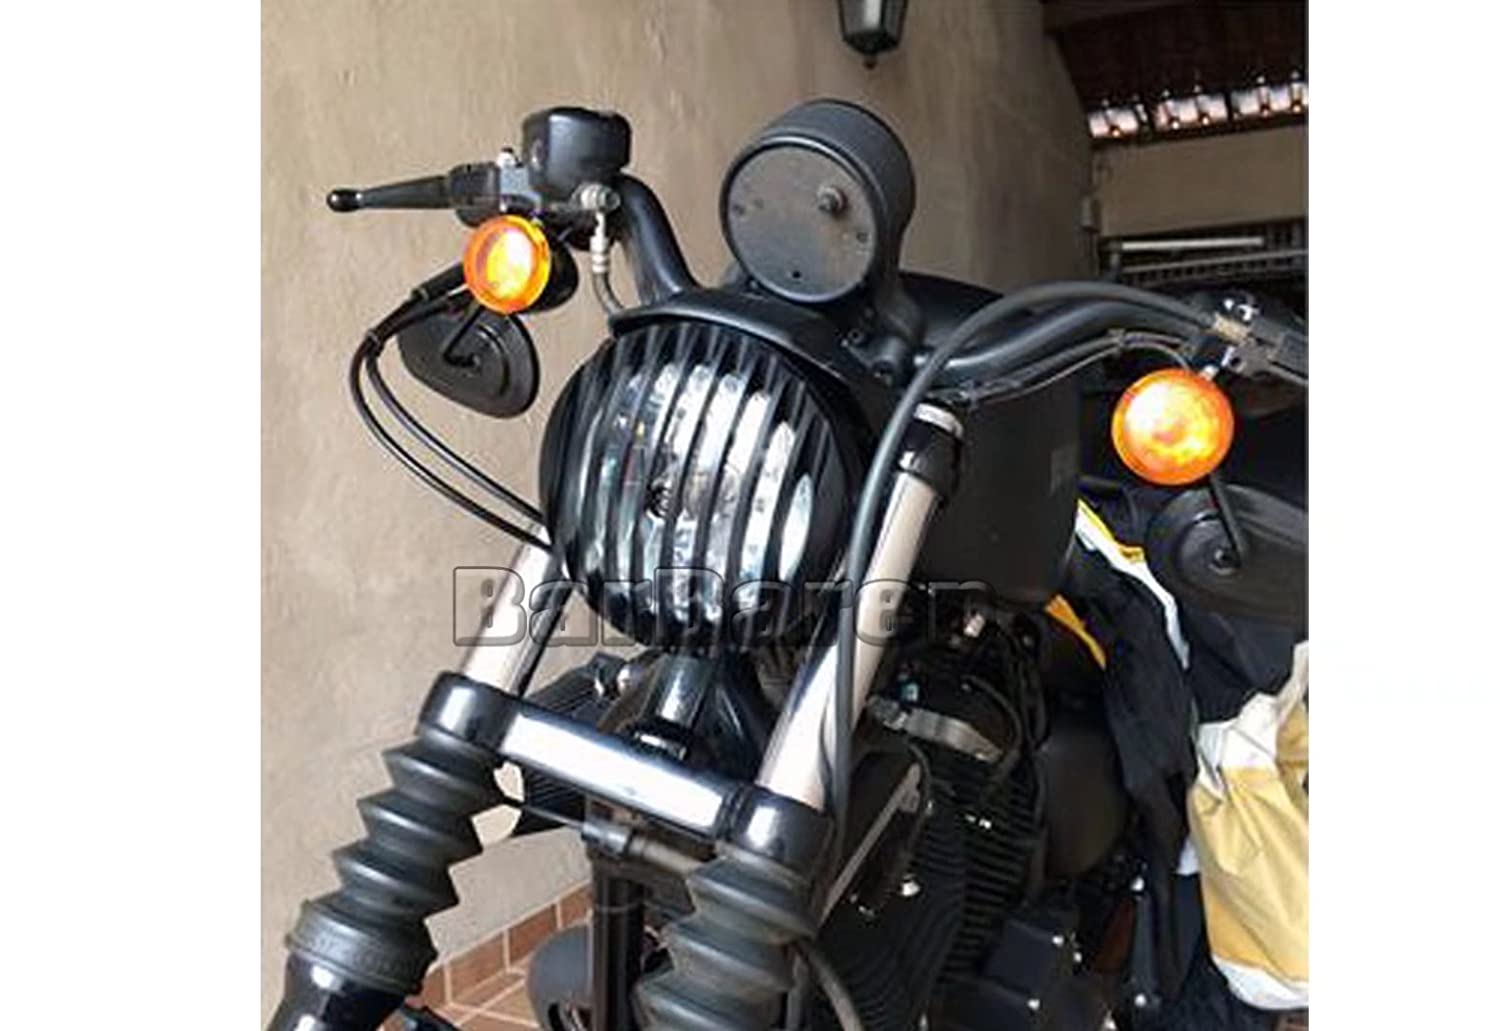 For Harley Davidson Sportster XL 883 883N 1200 2004-2014 Headlight Grill Cover